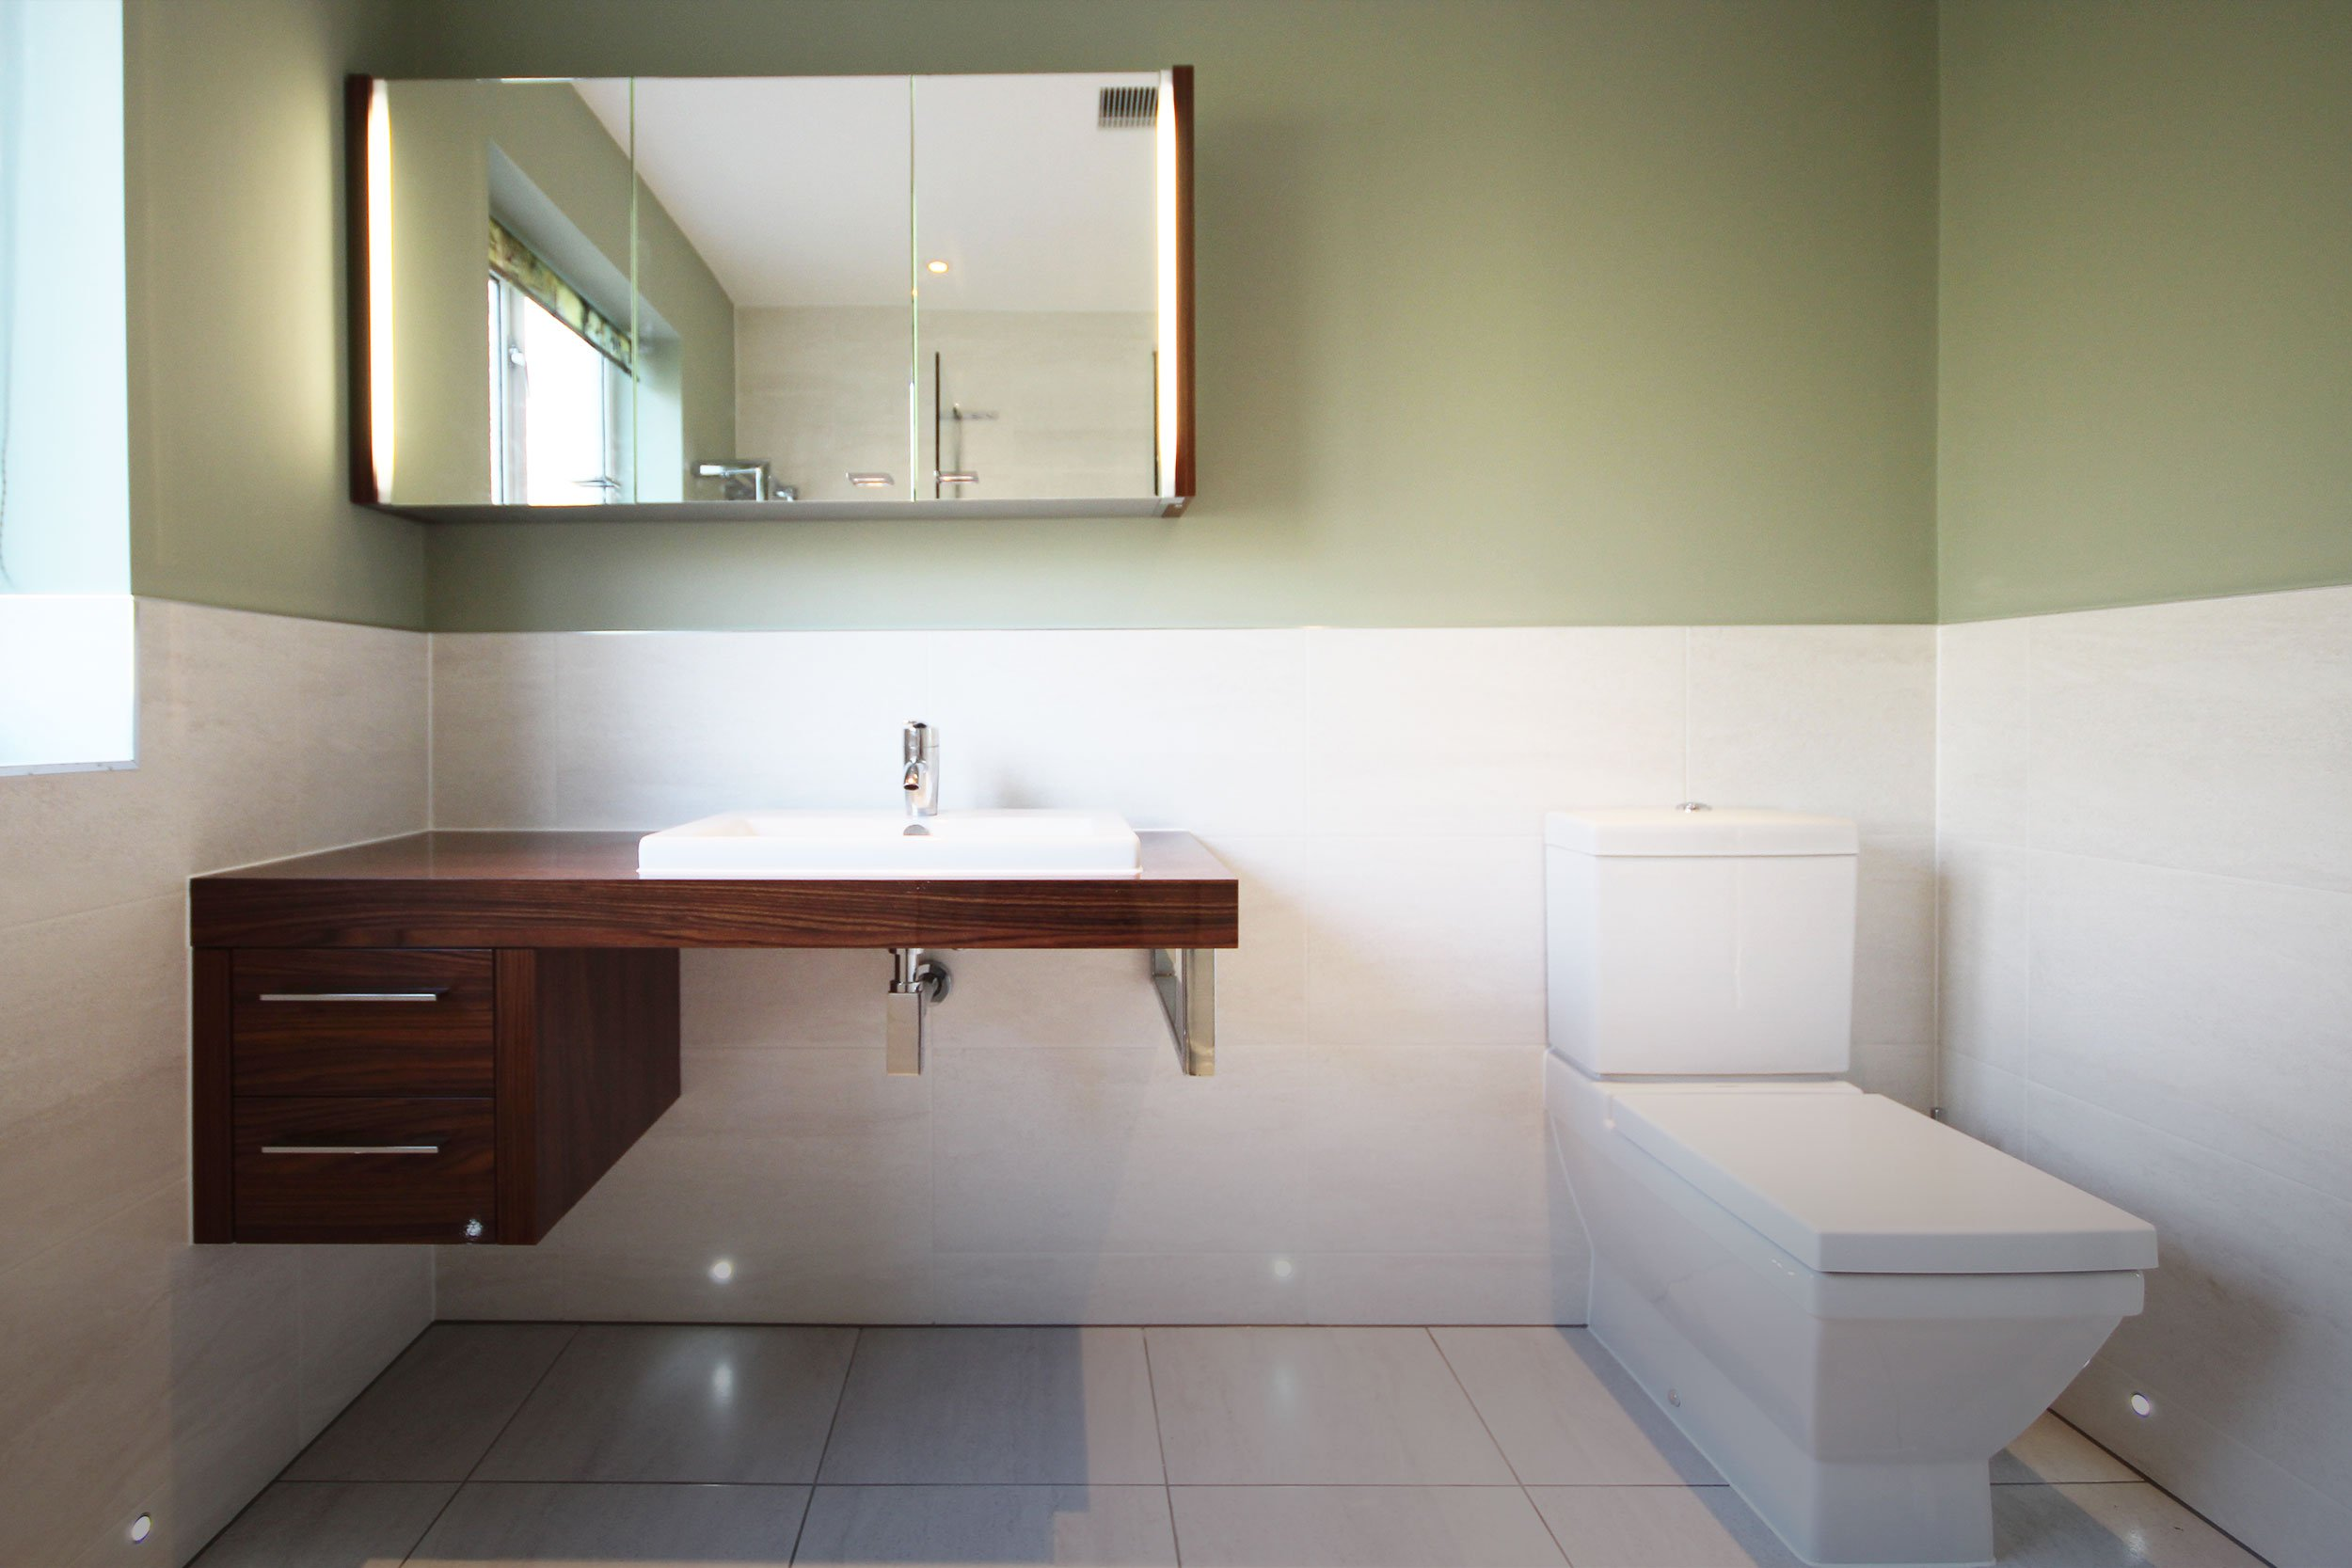 Master ensuite refurbished with top spec sanitaryware